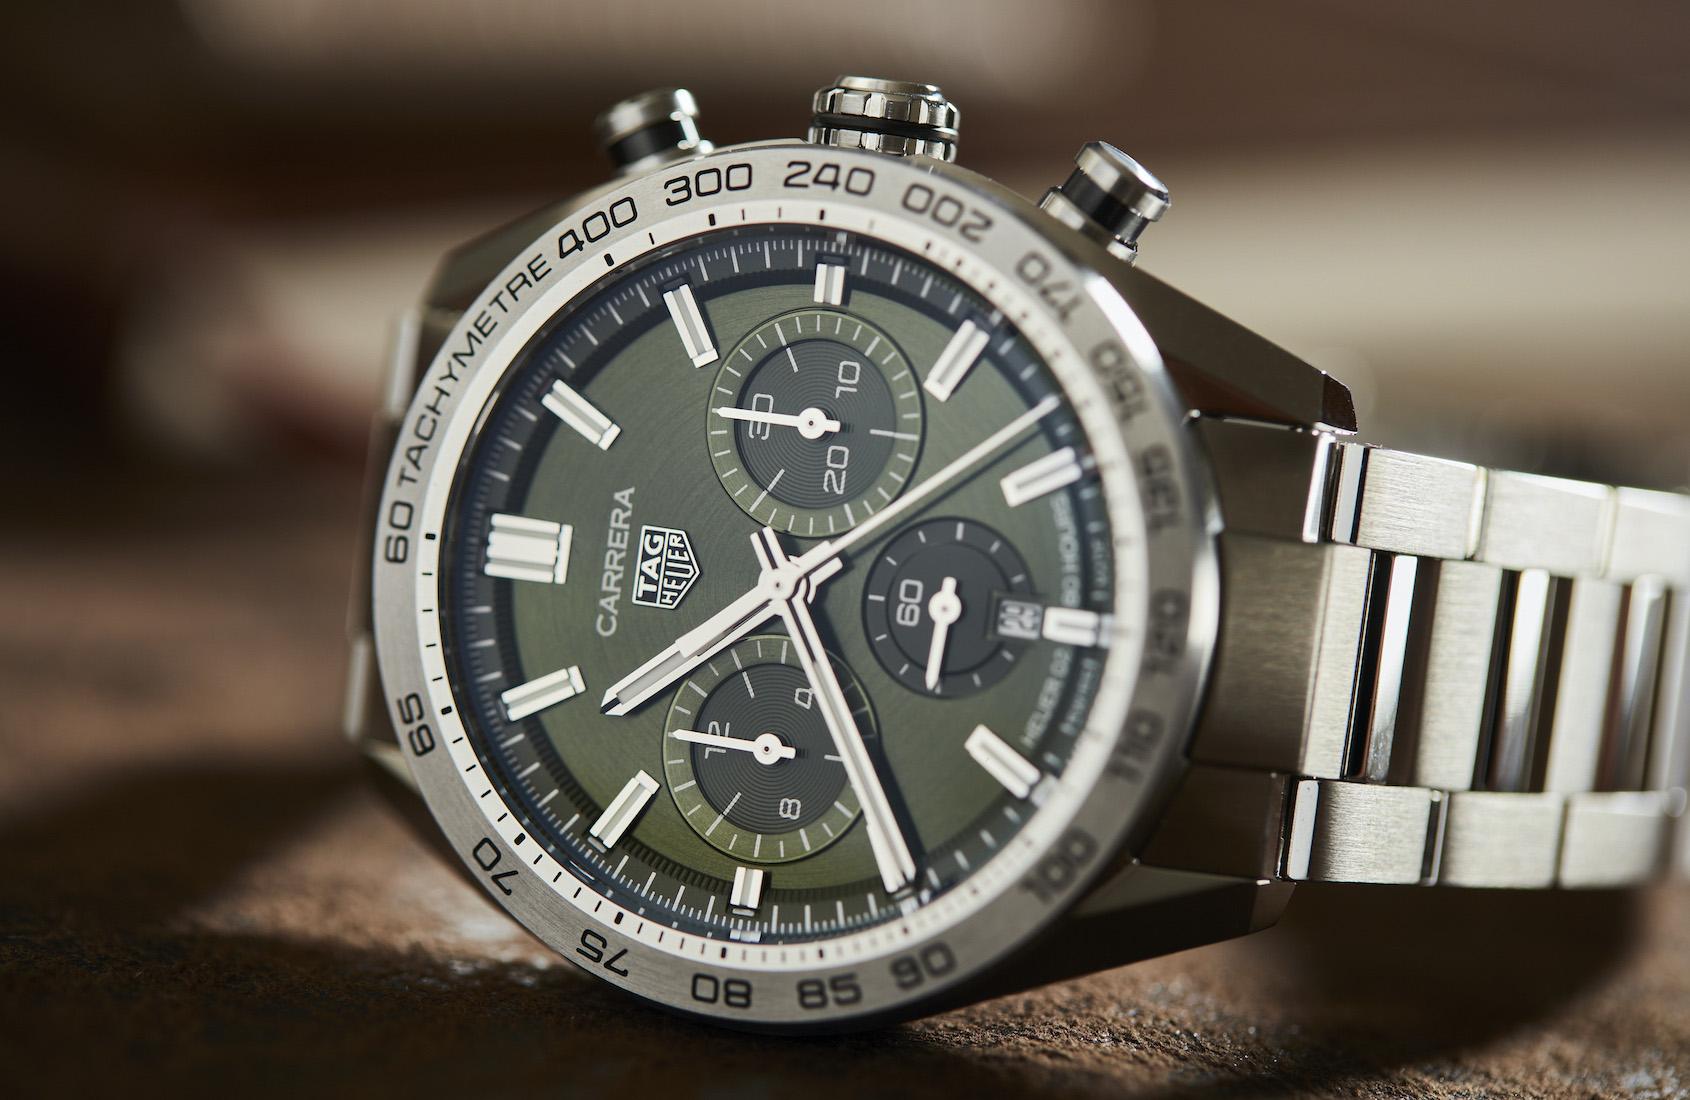 The Swiss copy TAG Heuer is best choice for men.